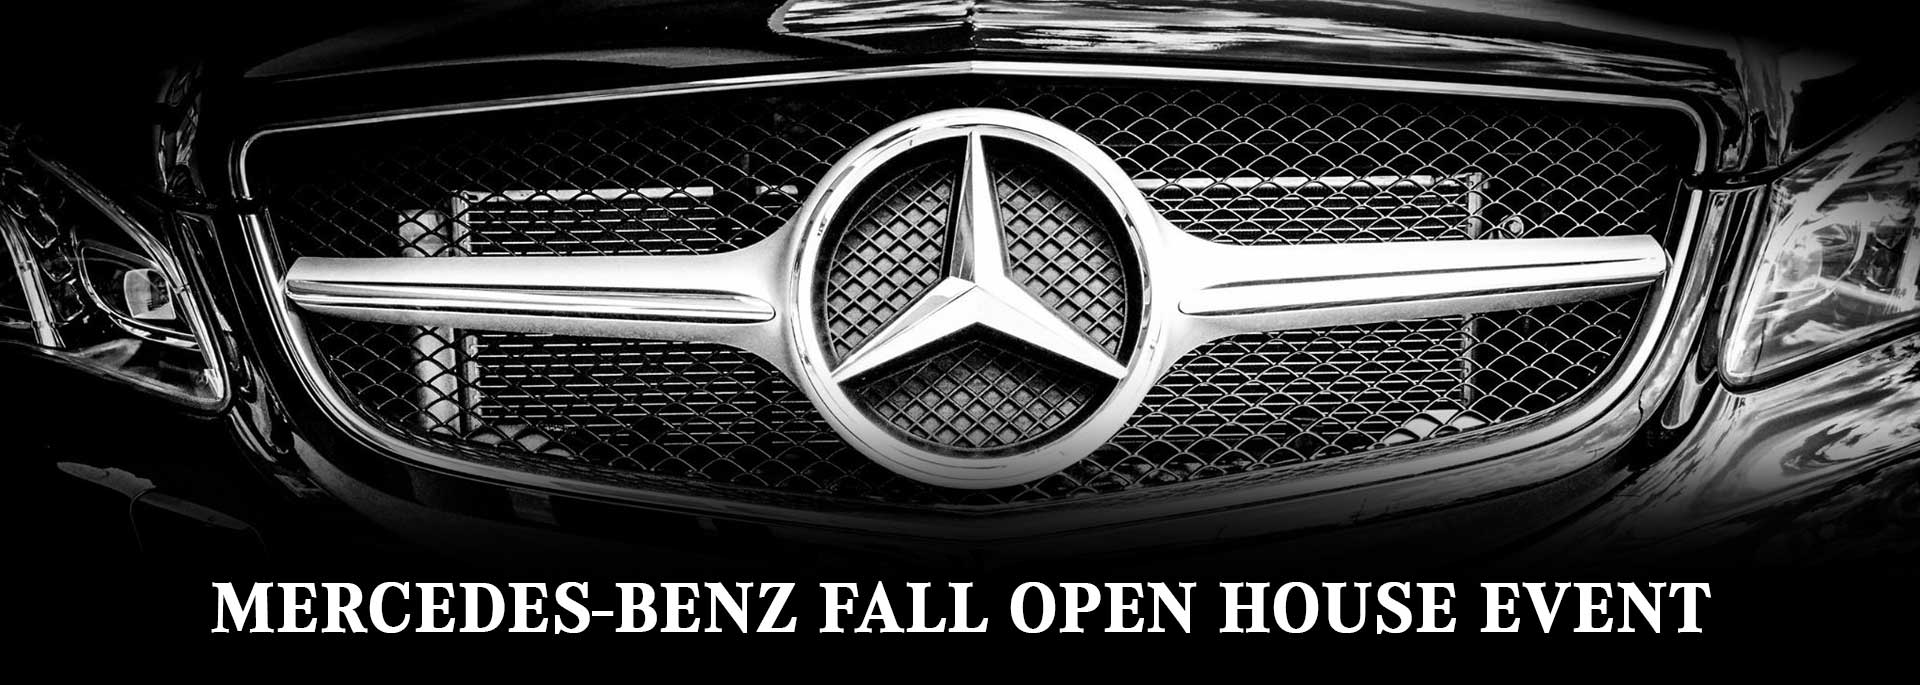 hight resolution of please join autohaus of peoria on saturday october 27th from 11 am 3 pm for our mercedes benz fall open house event all guests will receive a 1 000 off